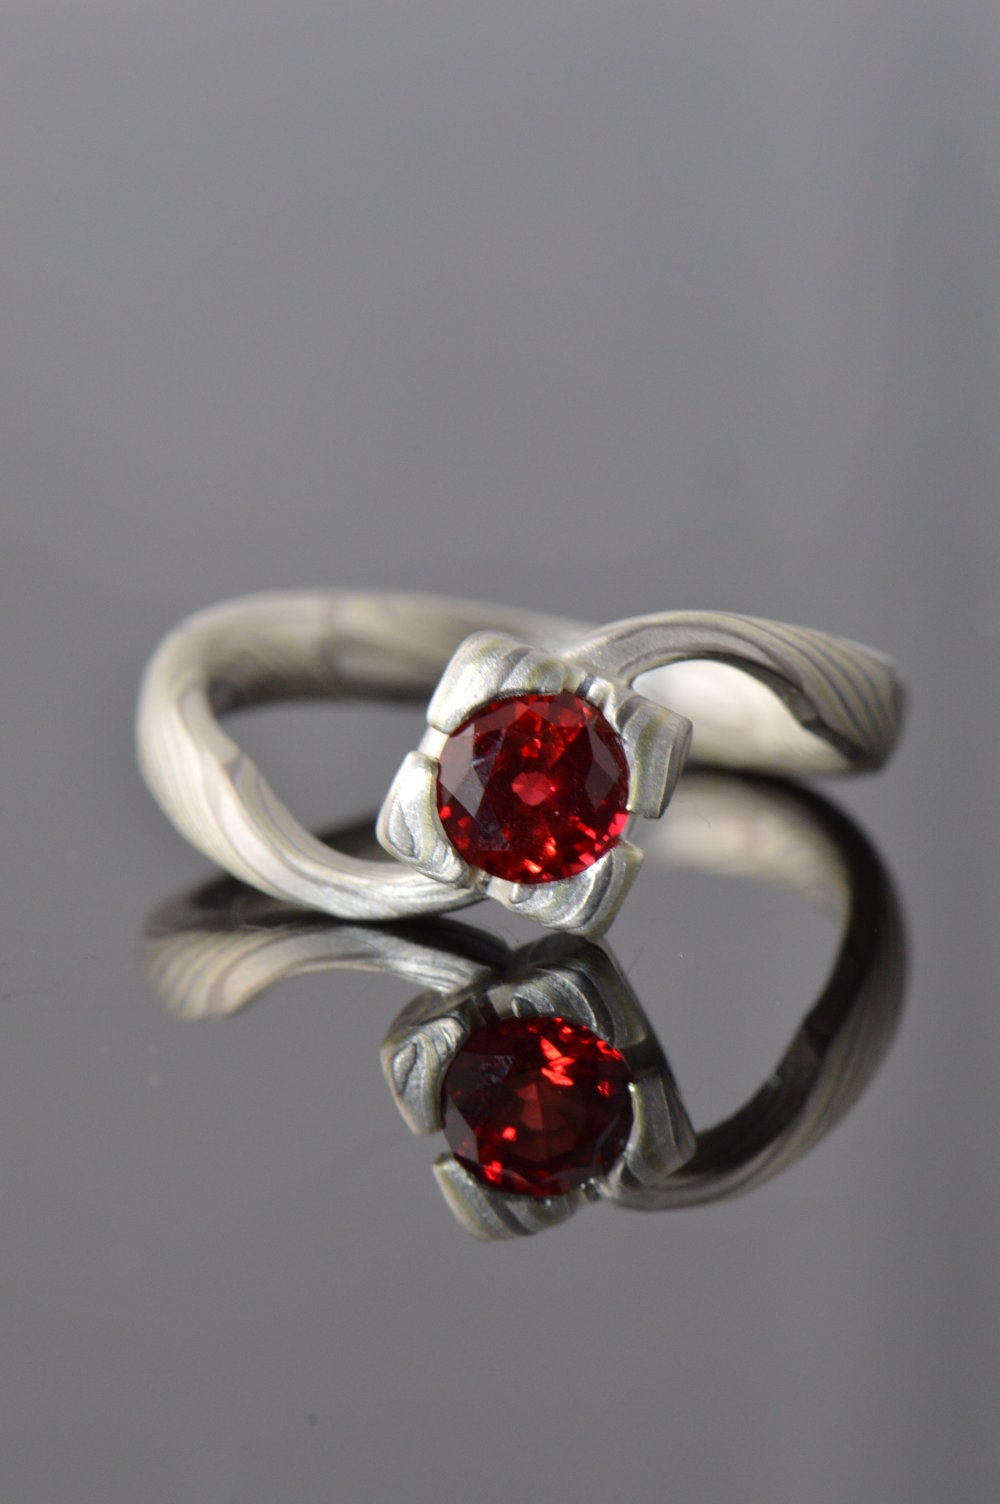 darvier-hand-forged-mokume-ruby-twist-engagement-ring.JPG